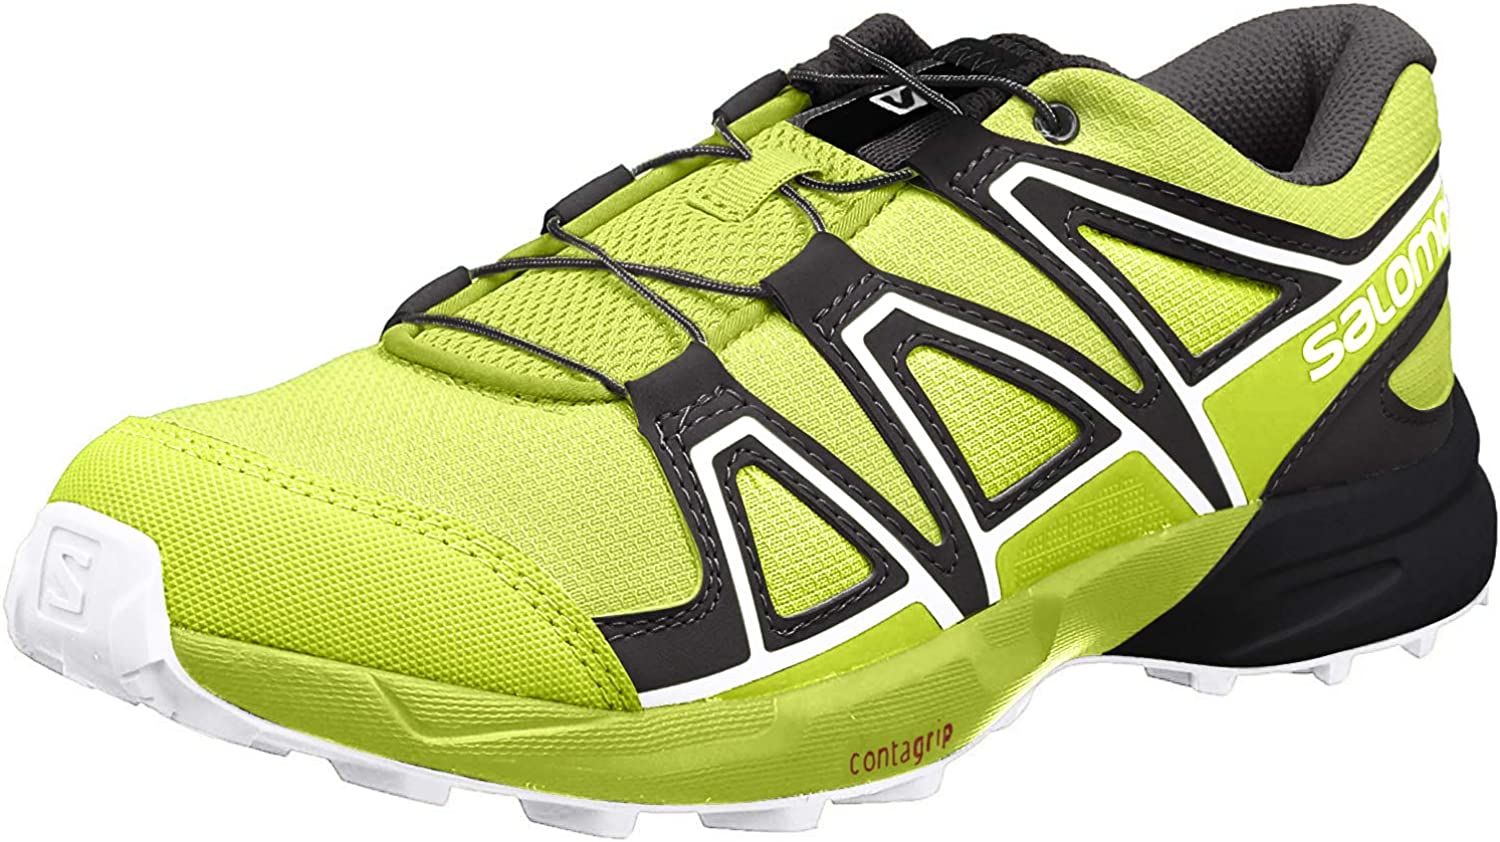 Salomon Speedcross J, Zapatillas de Trail Running Unisex Niños, Verde (Acid Lime/Lime Green/White), 38 EU: Amazon.es: Zapatos y complementos